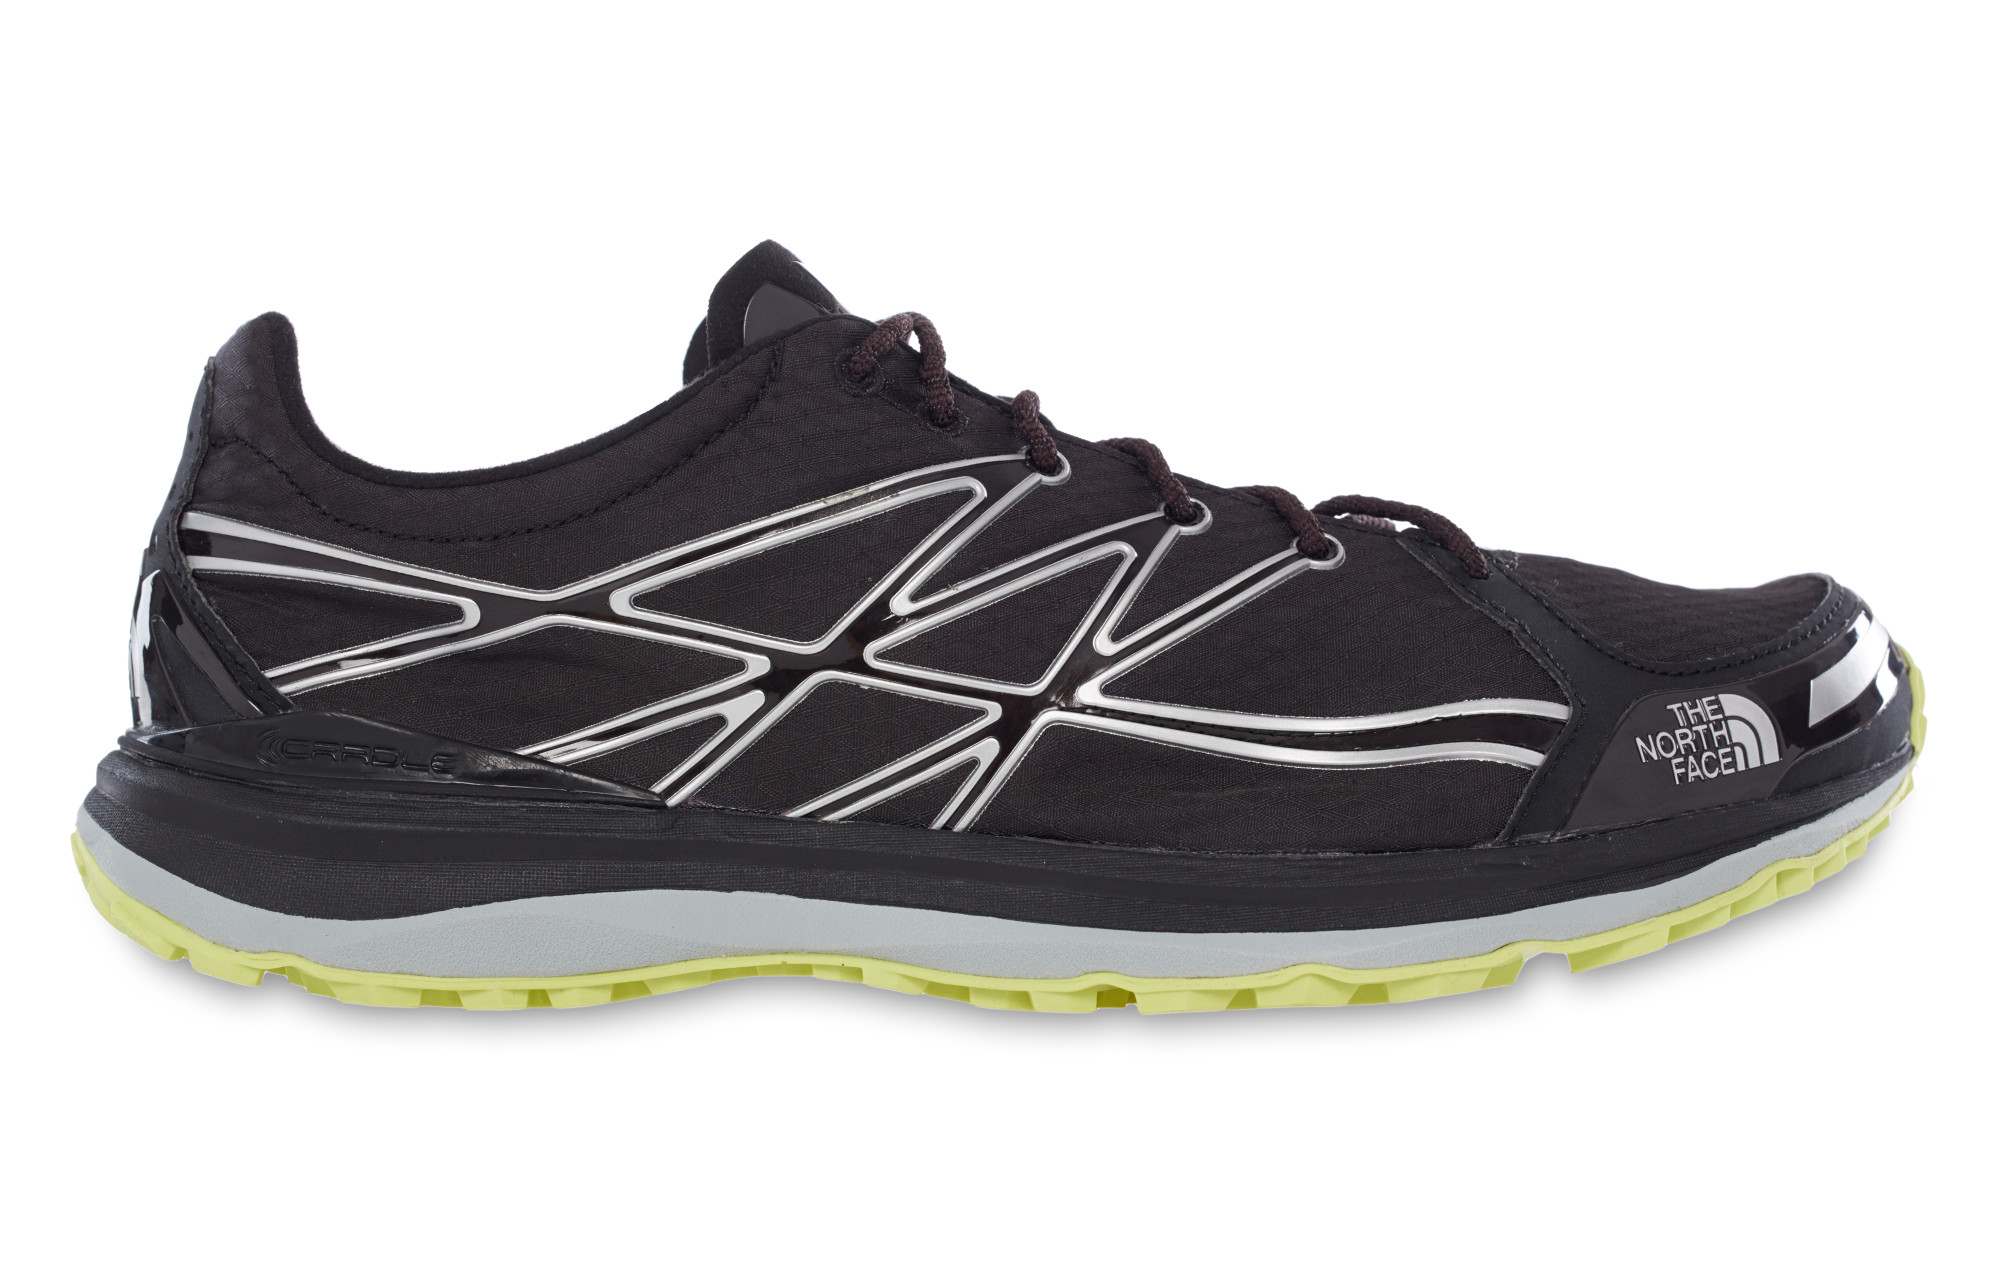 ce7498bdd4a THE NORTH FACE Shoes ULTRA TR II Black Yellow Men